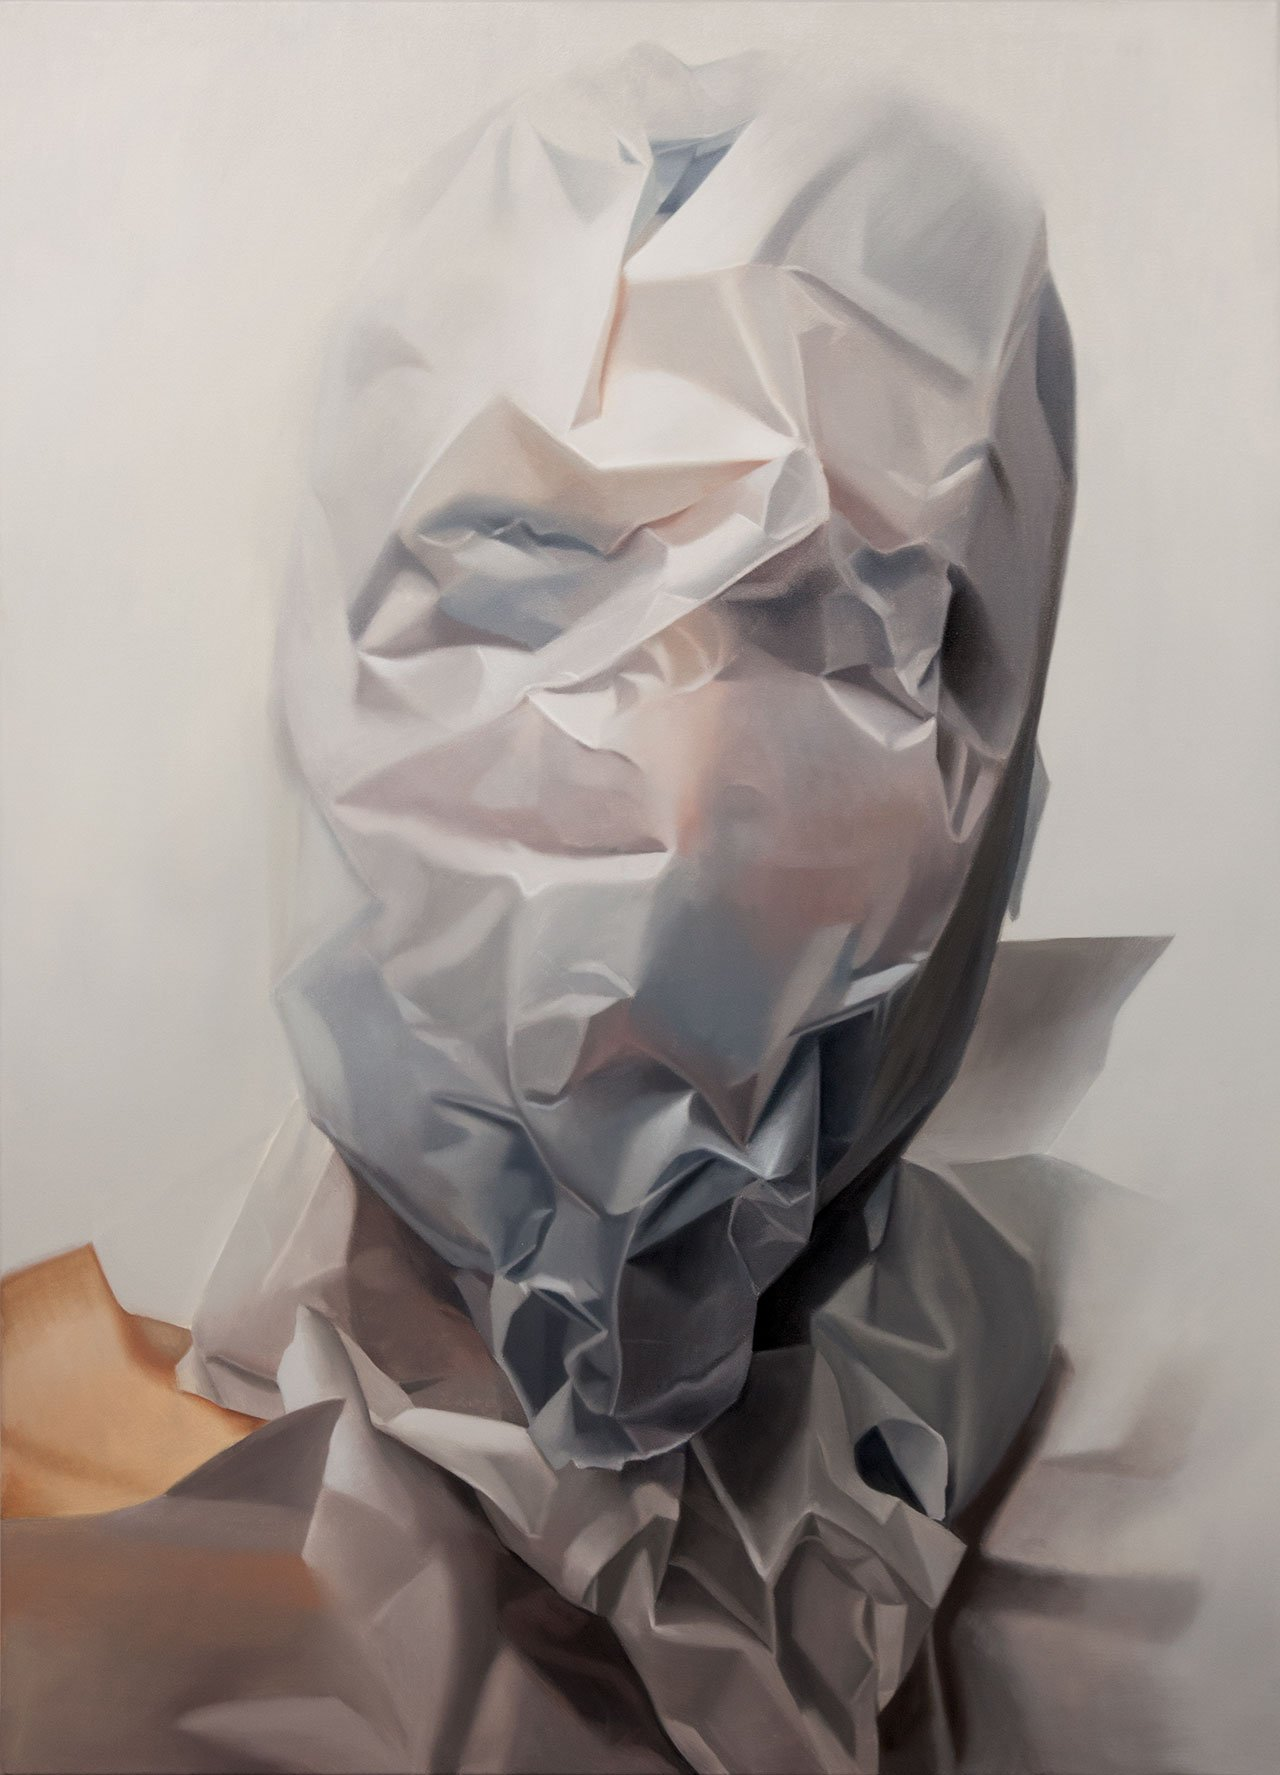 Mike Dargas, Invisible Kid, 2016, Oil on canvas, 140x100cm.